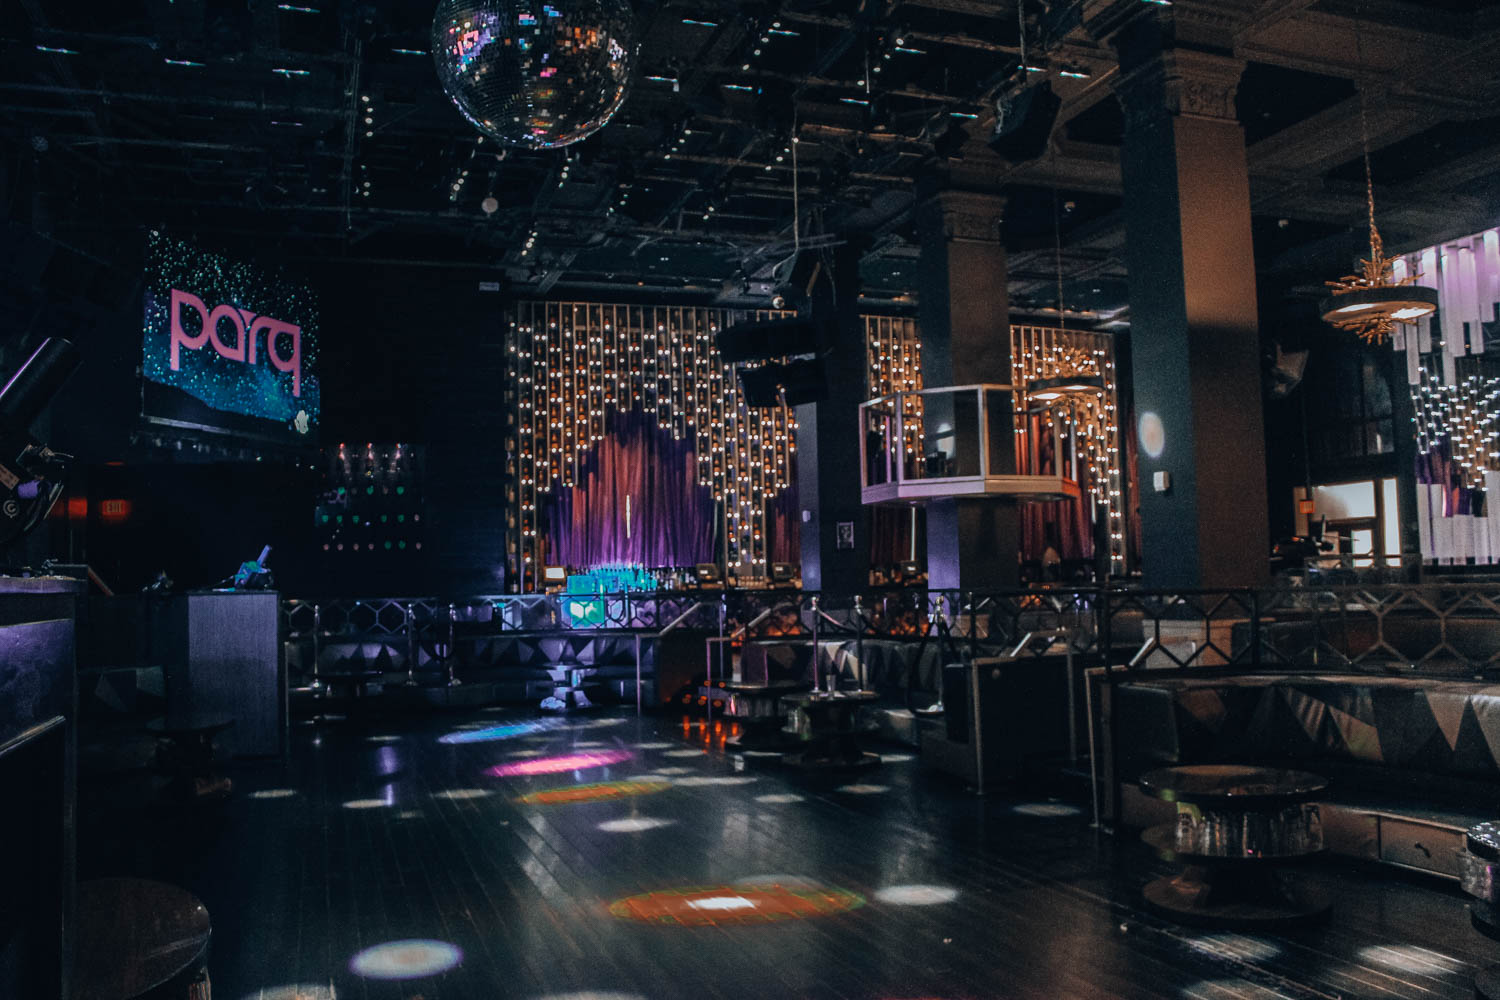 travel-guide-san-diego-recommendations-parq-nightclub